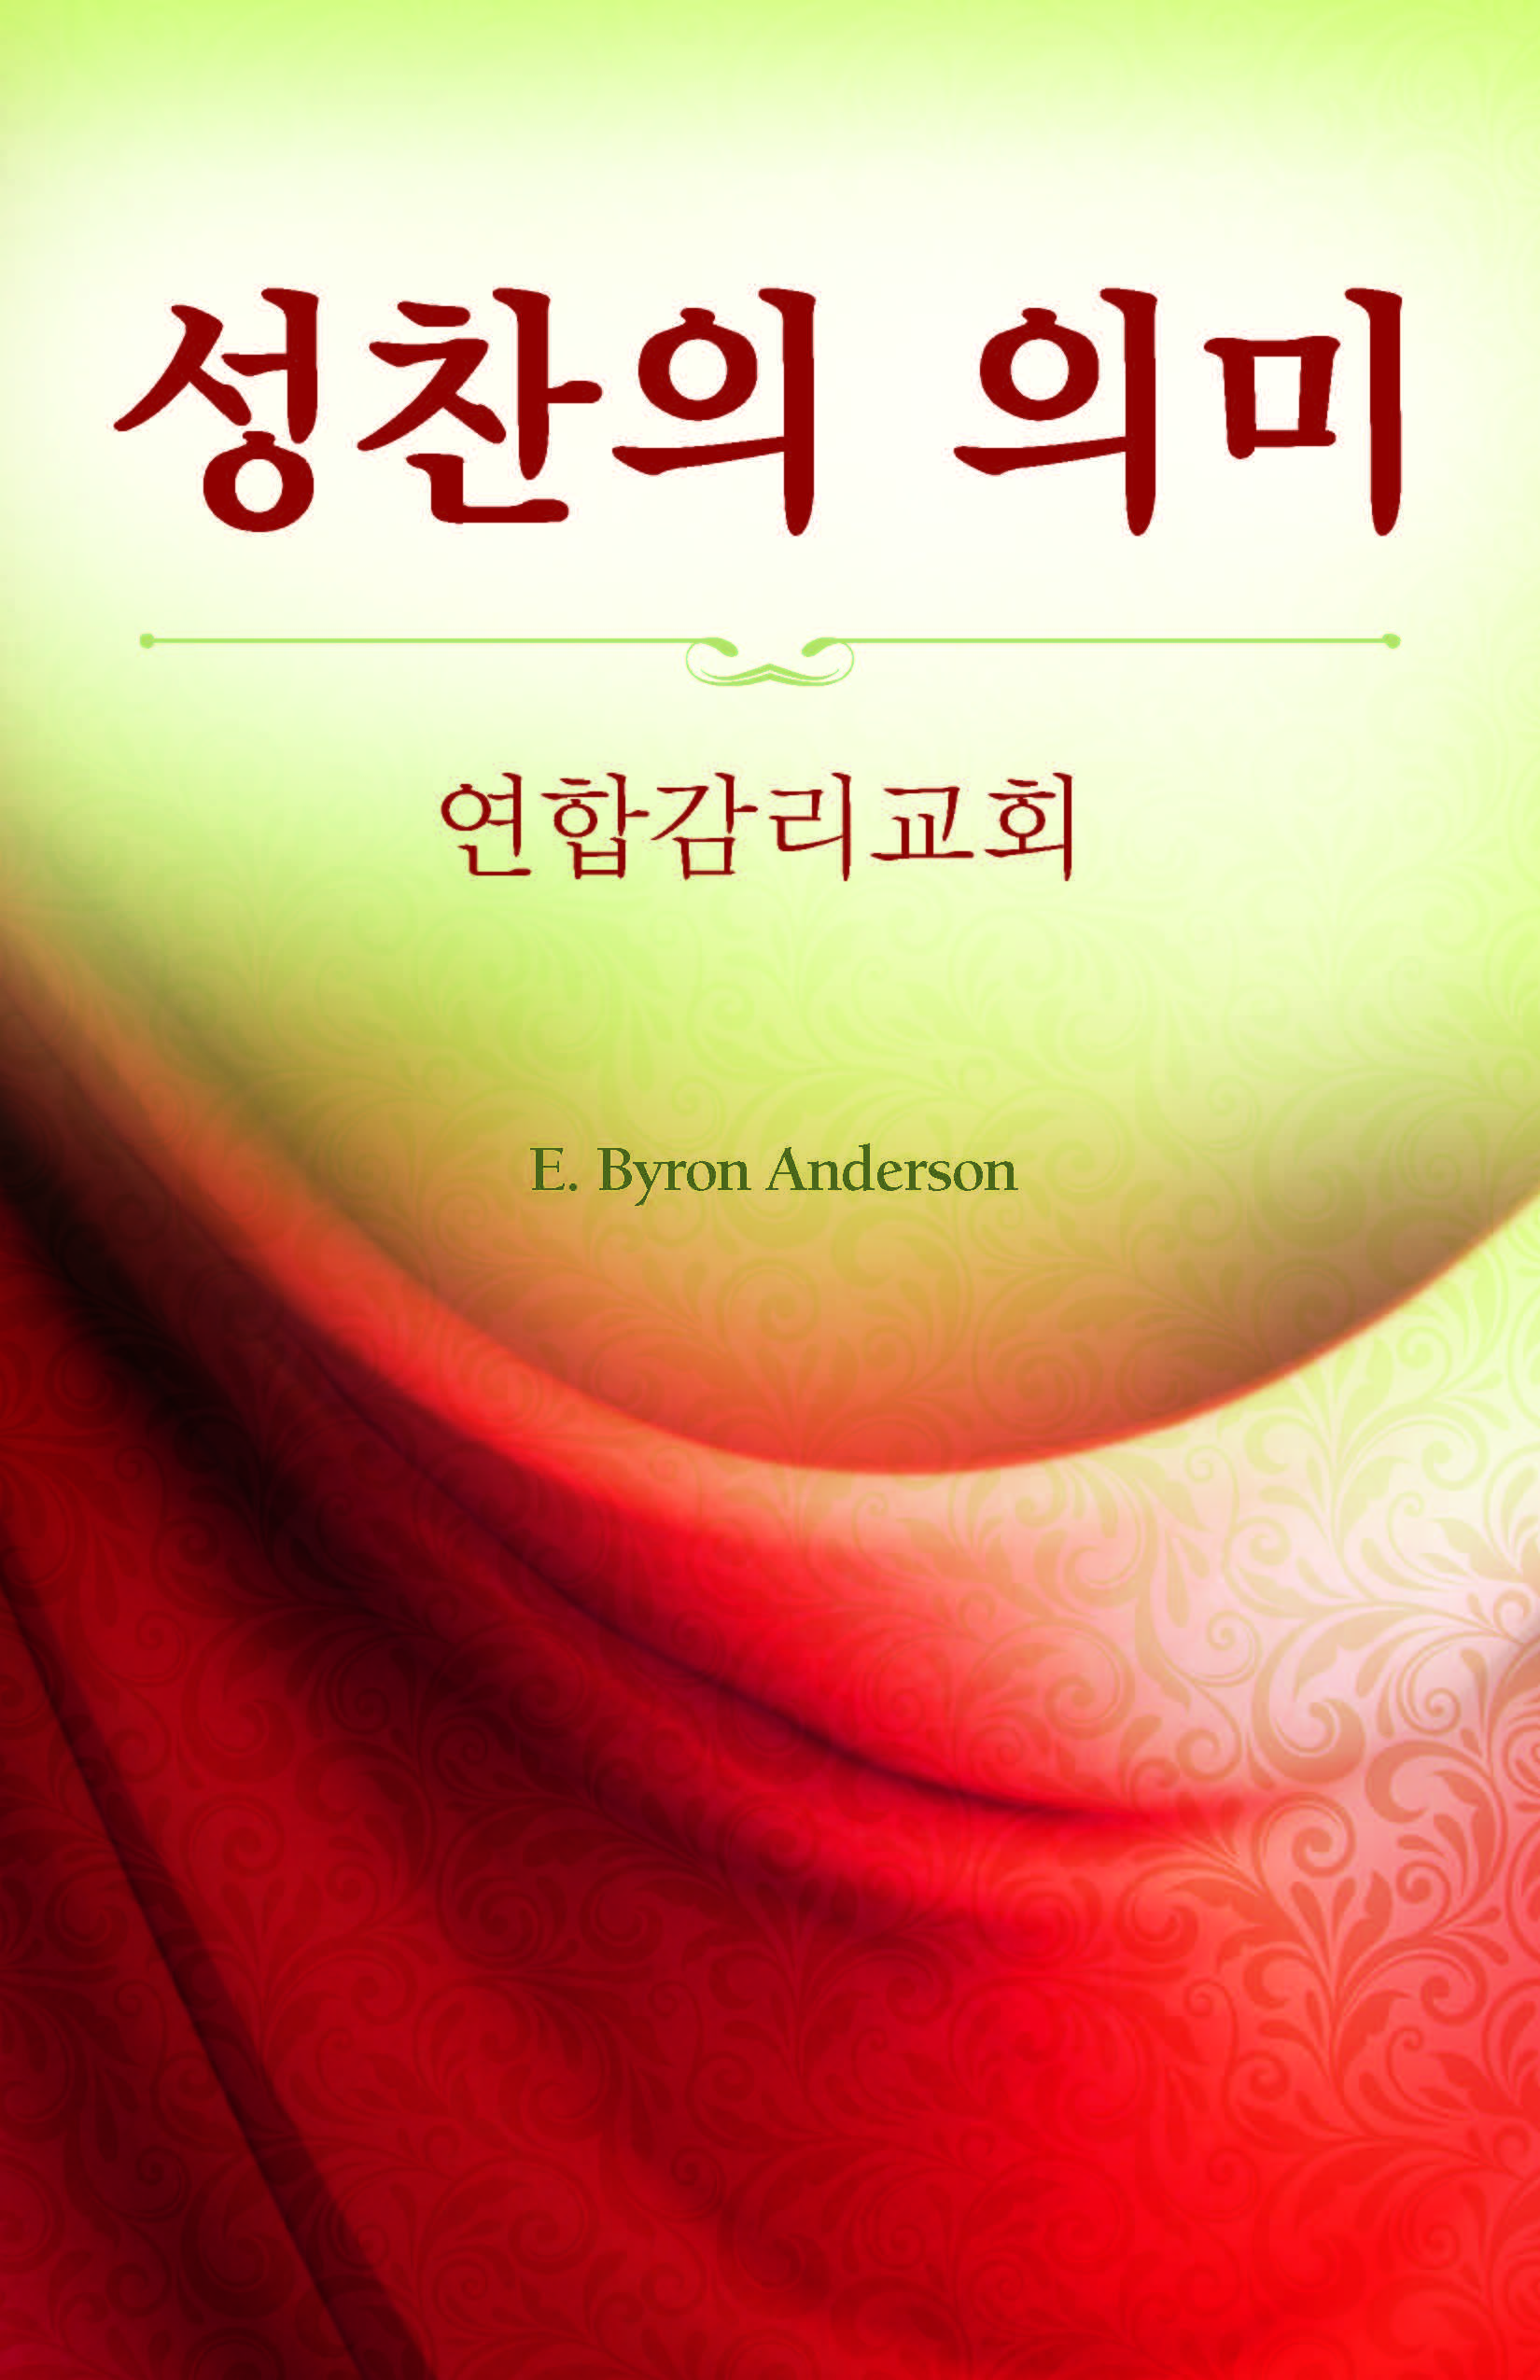 성찬의 의미 — The Meaning of Holy Communion